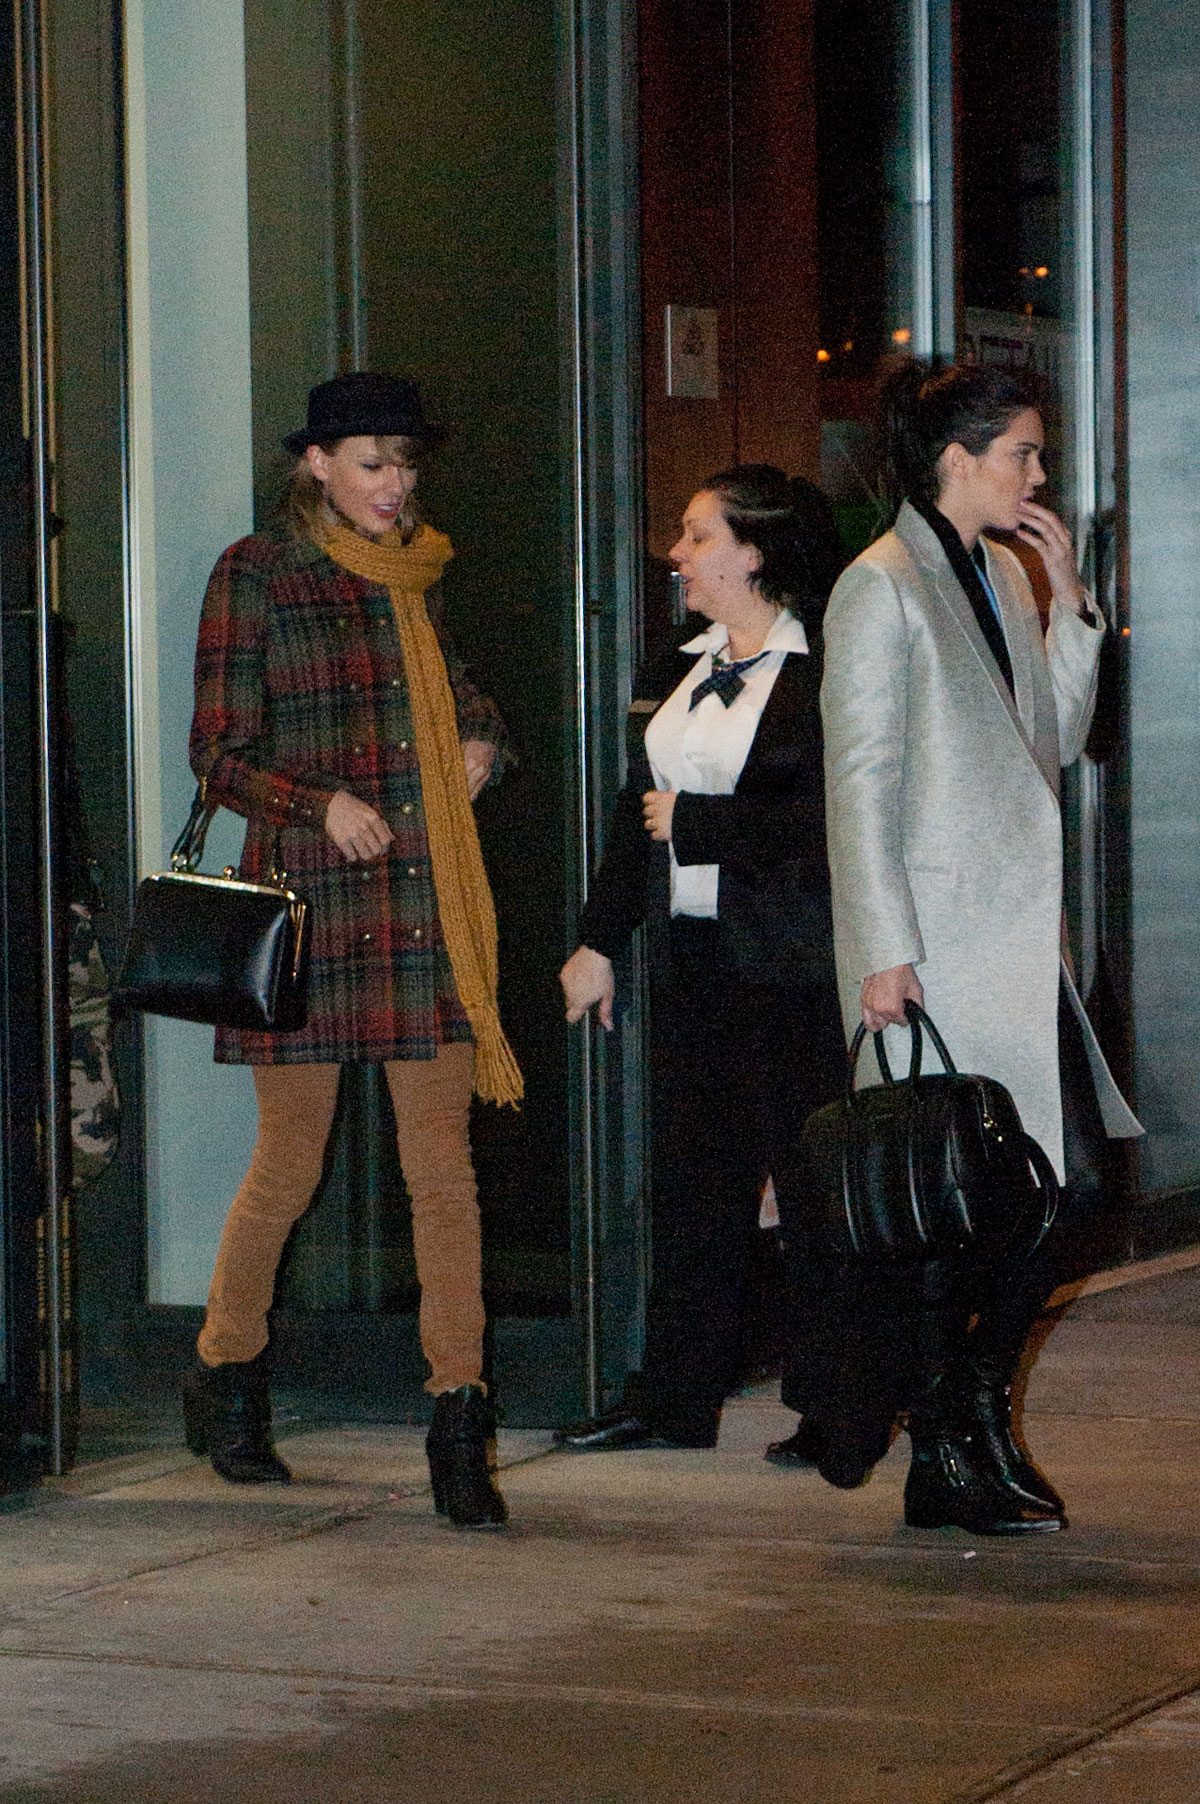 Kendall Jenner, Taylor Swift and Cara Delevingne coming out of Gigi Hadids house